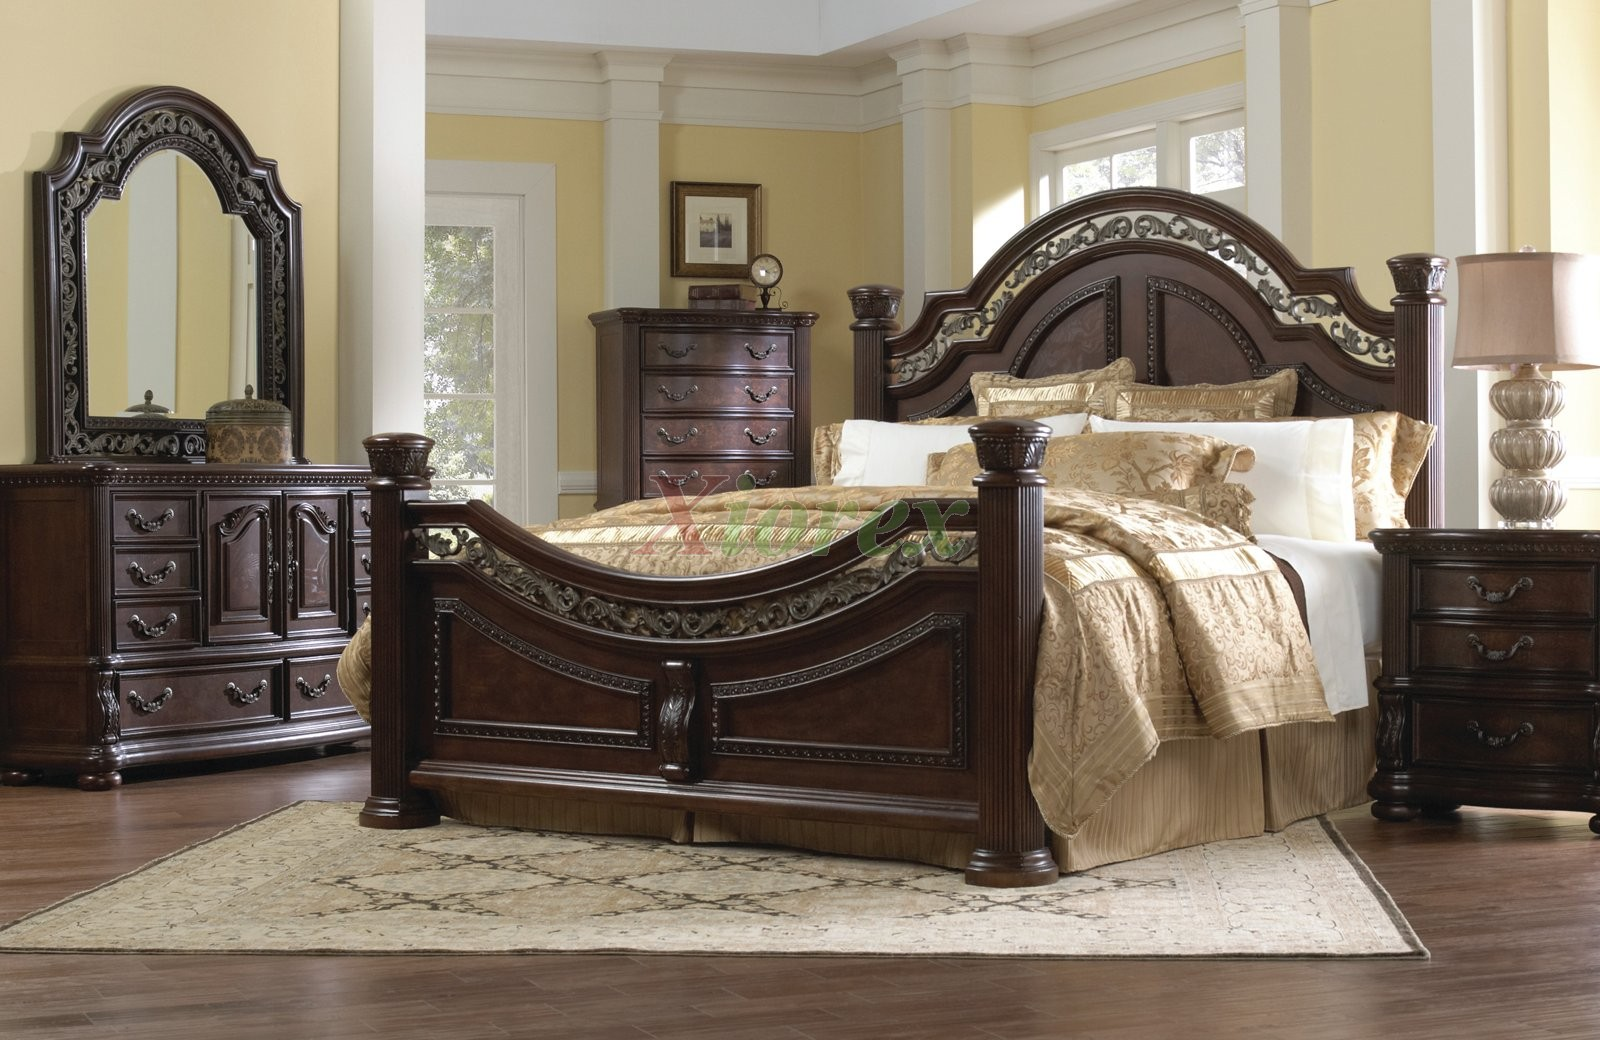 traditional bedroom furniture set w arched headboard beds 107 xiorex